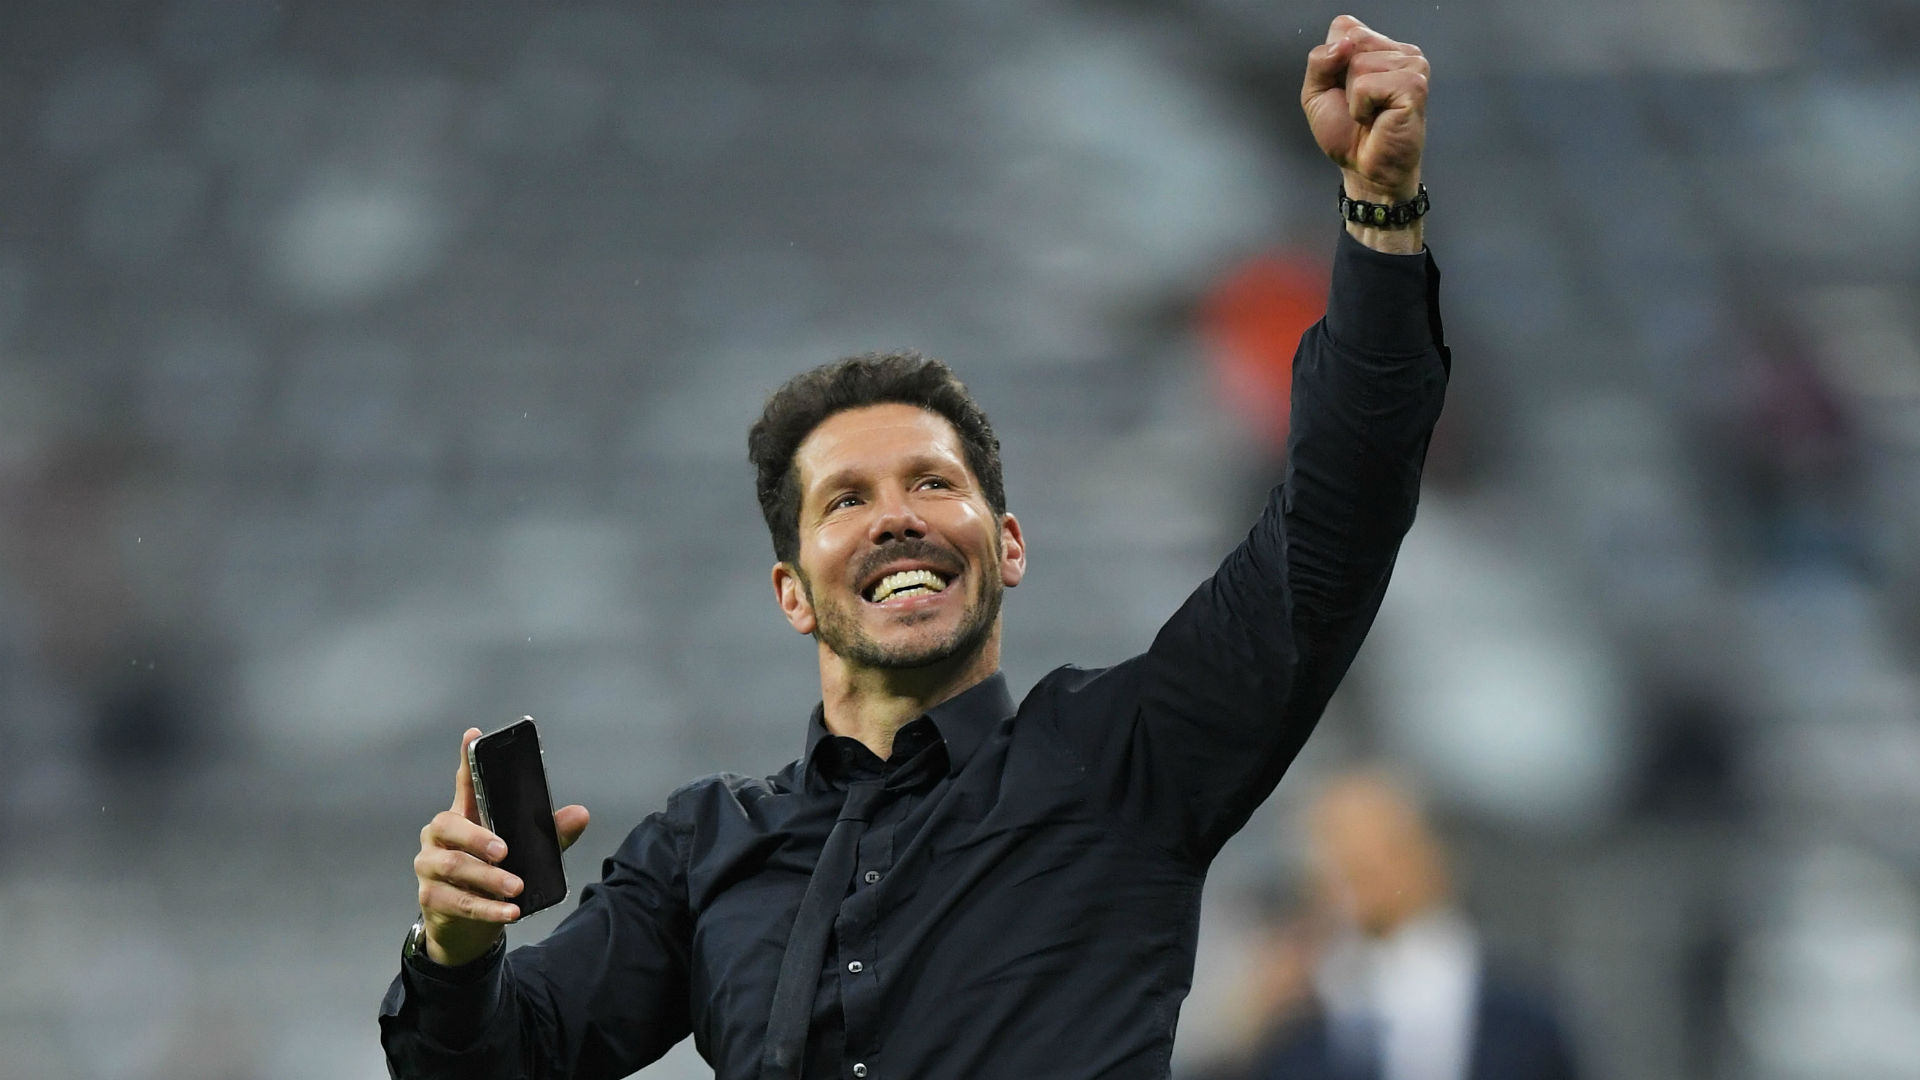 Diego Simeone Atletico Madrid 2016